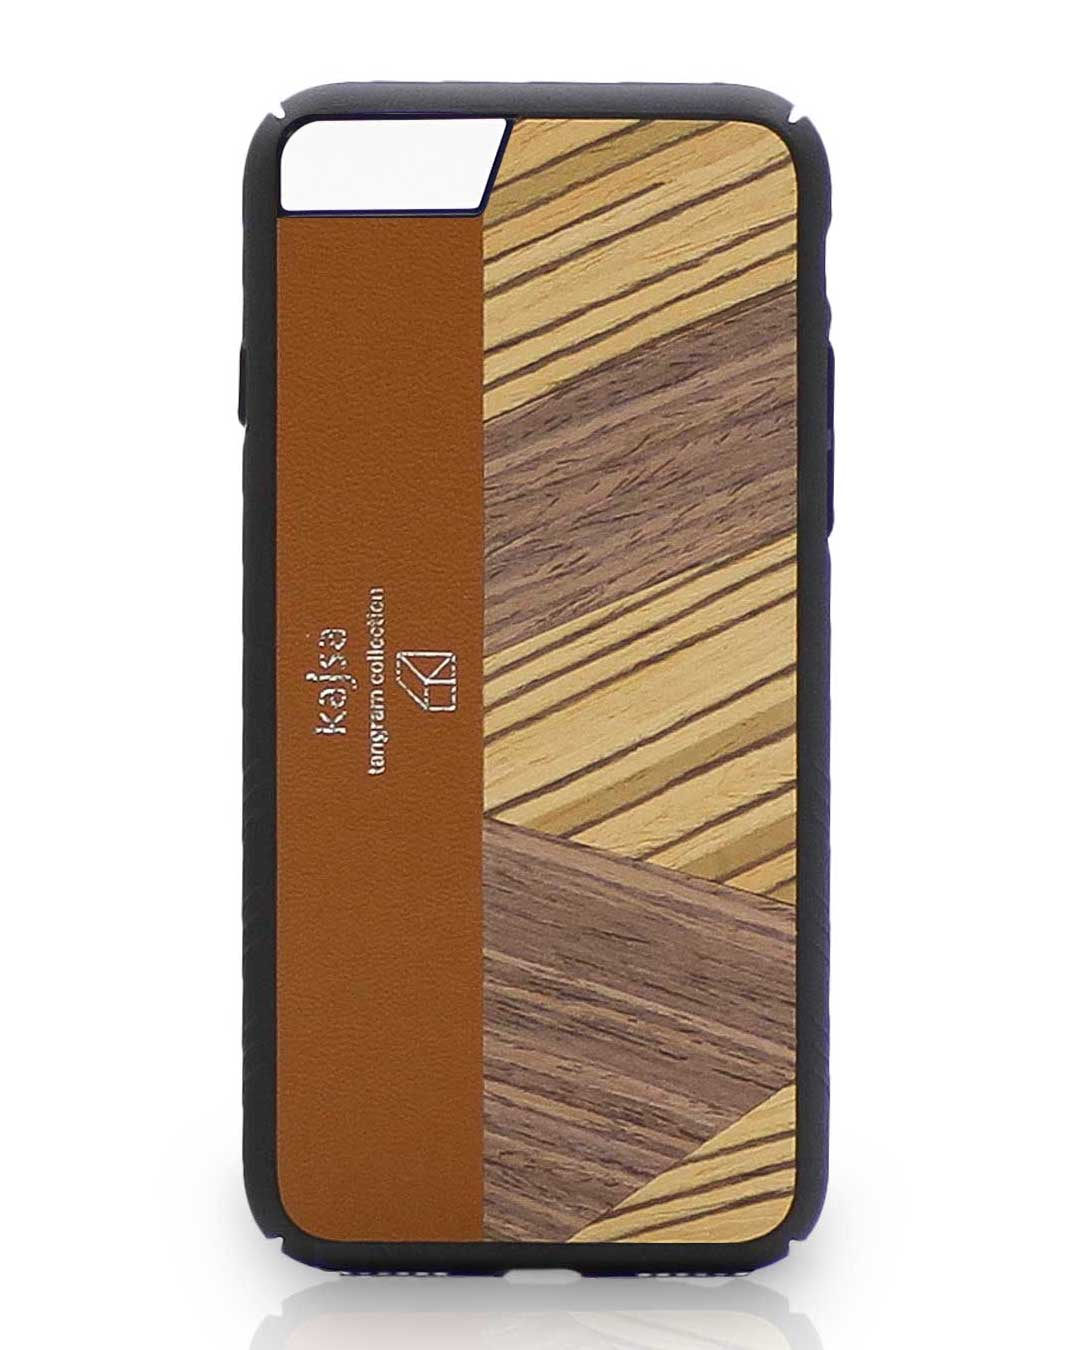 Eine Braune Schutzhülle Case aus echtem Holz kombiniert mit echtem Leder für das iPhone 8 Plus, das iPhone 8, das iPhone 7 und das iPhone 7 Plus.